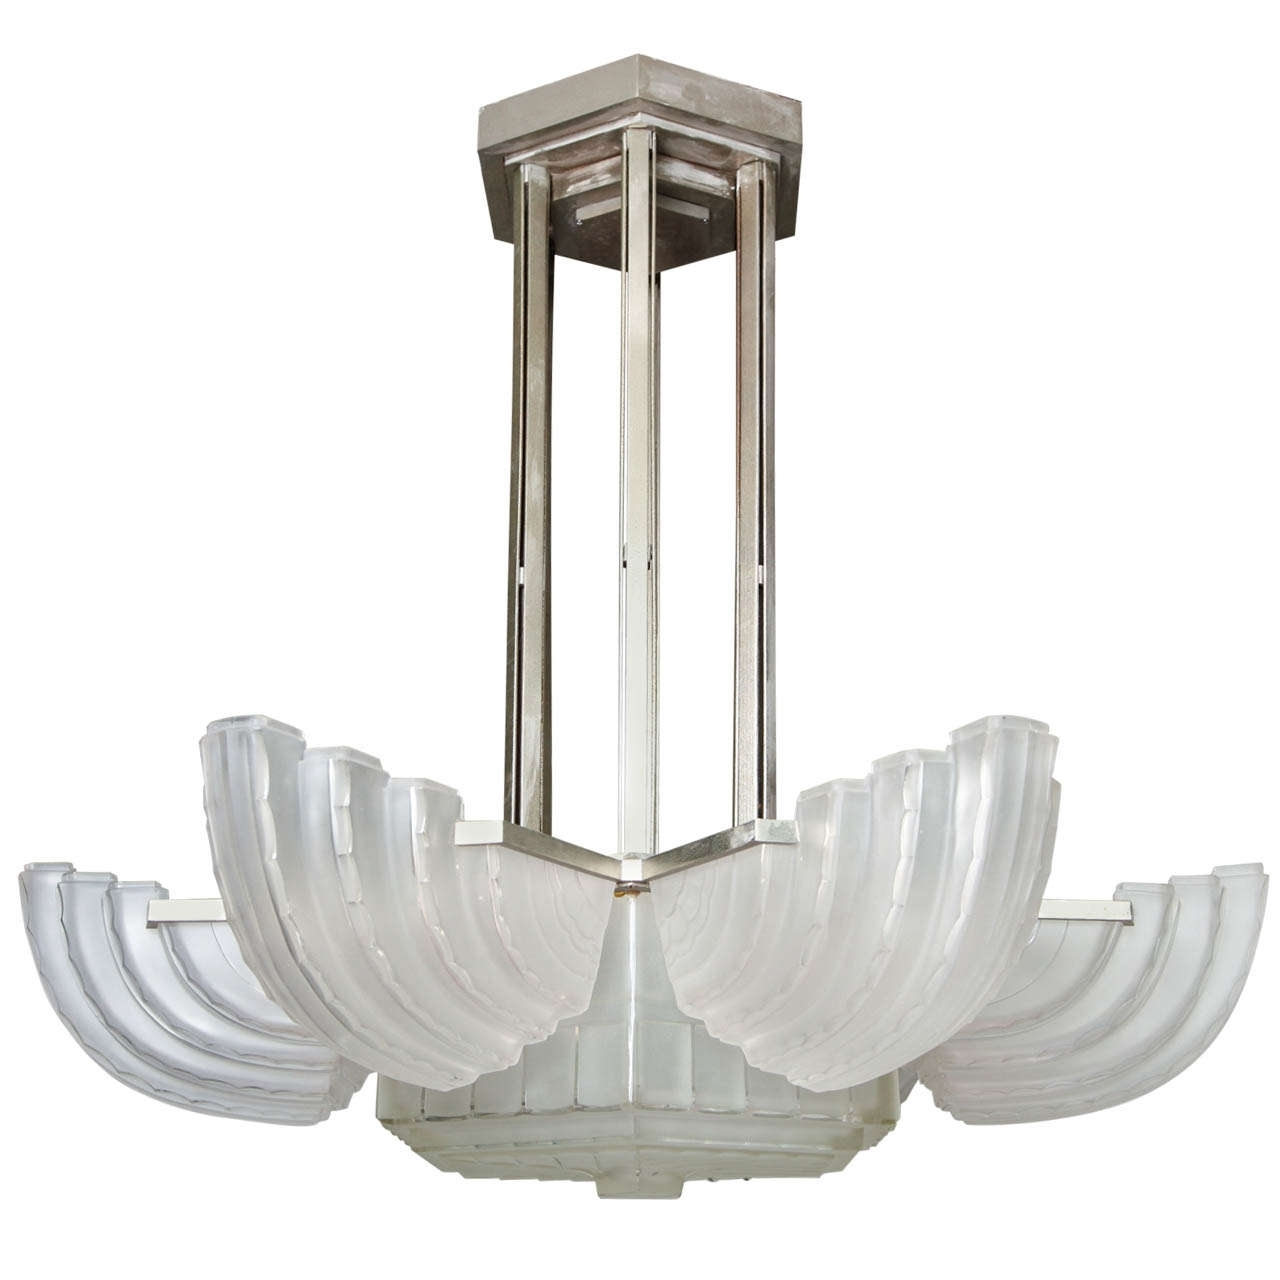 Most Current Large Art Deco Chandelier Inside Large And Important Art Deco Chandeliersabino – Paul Stamati Gallery (View 13 of 20)